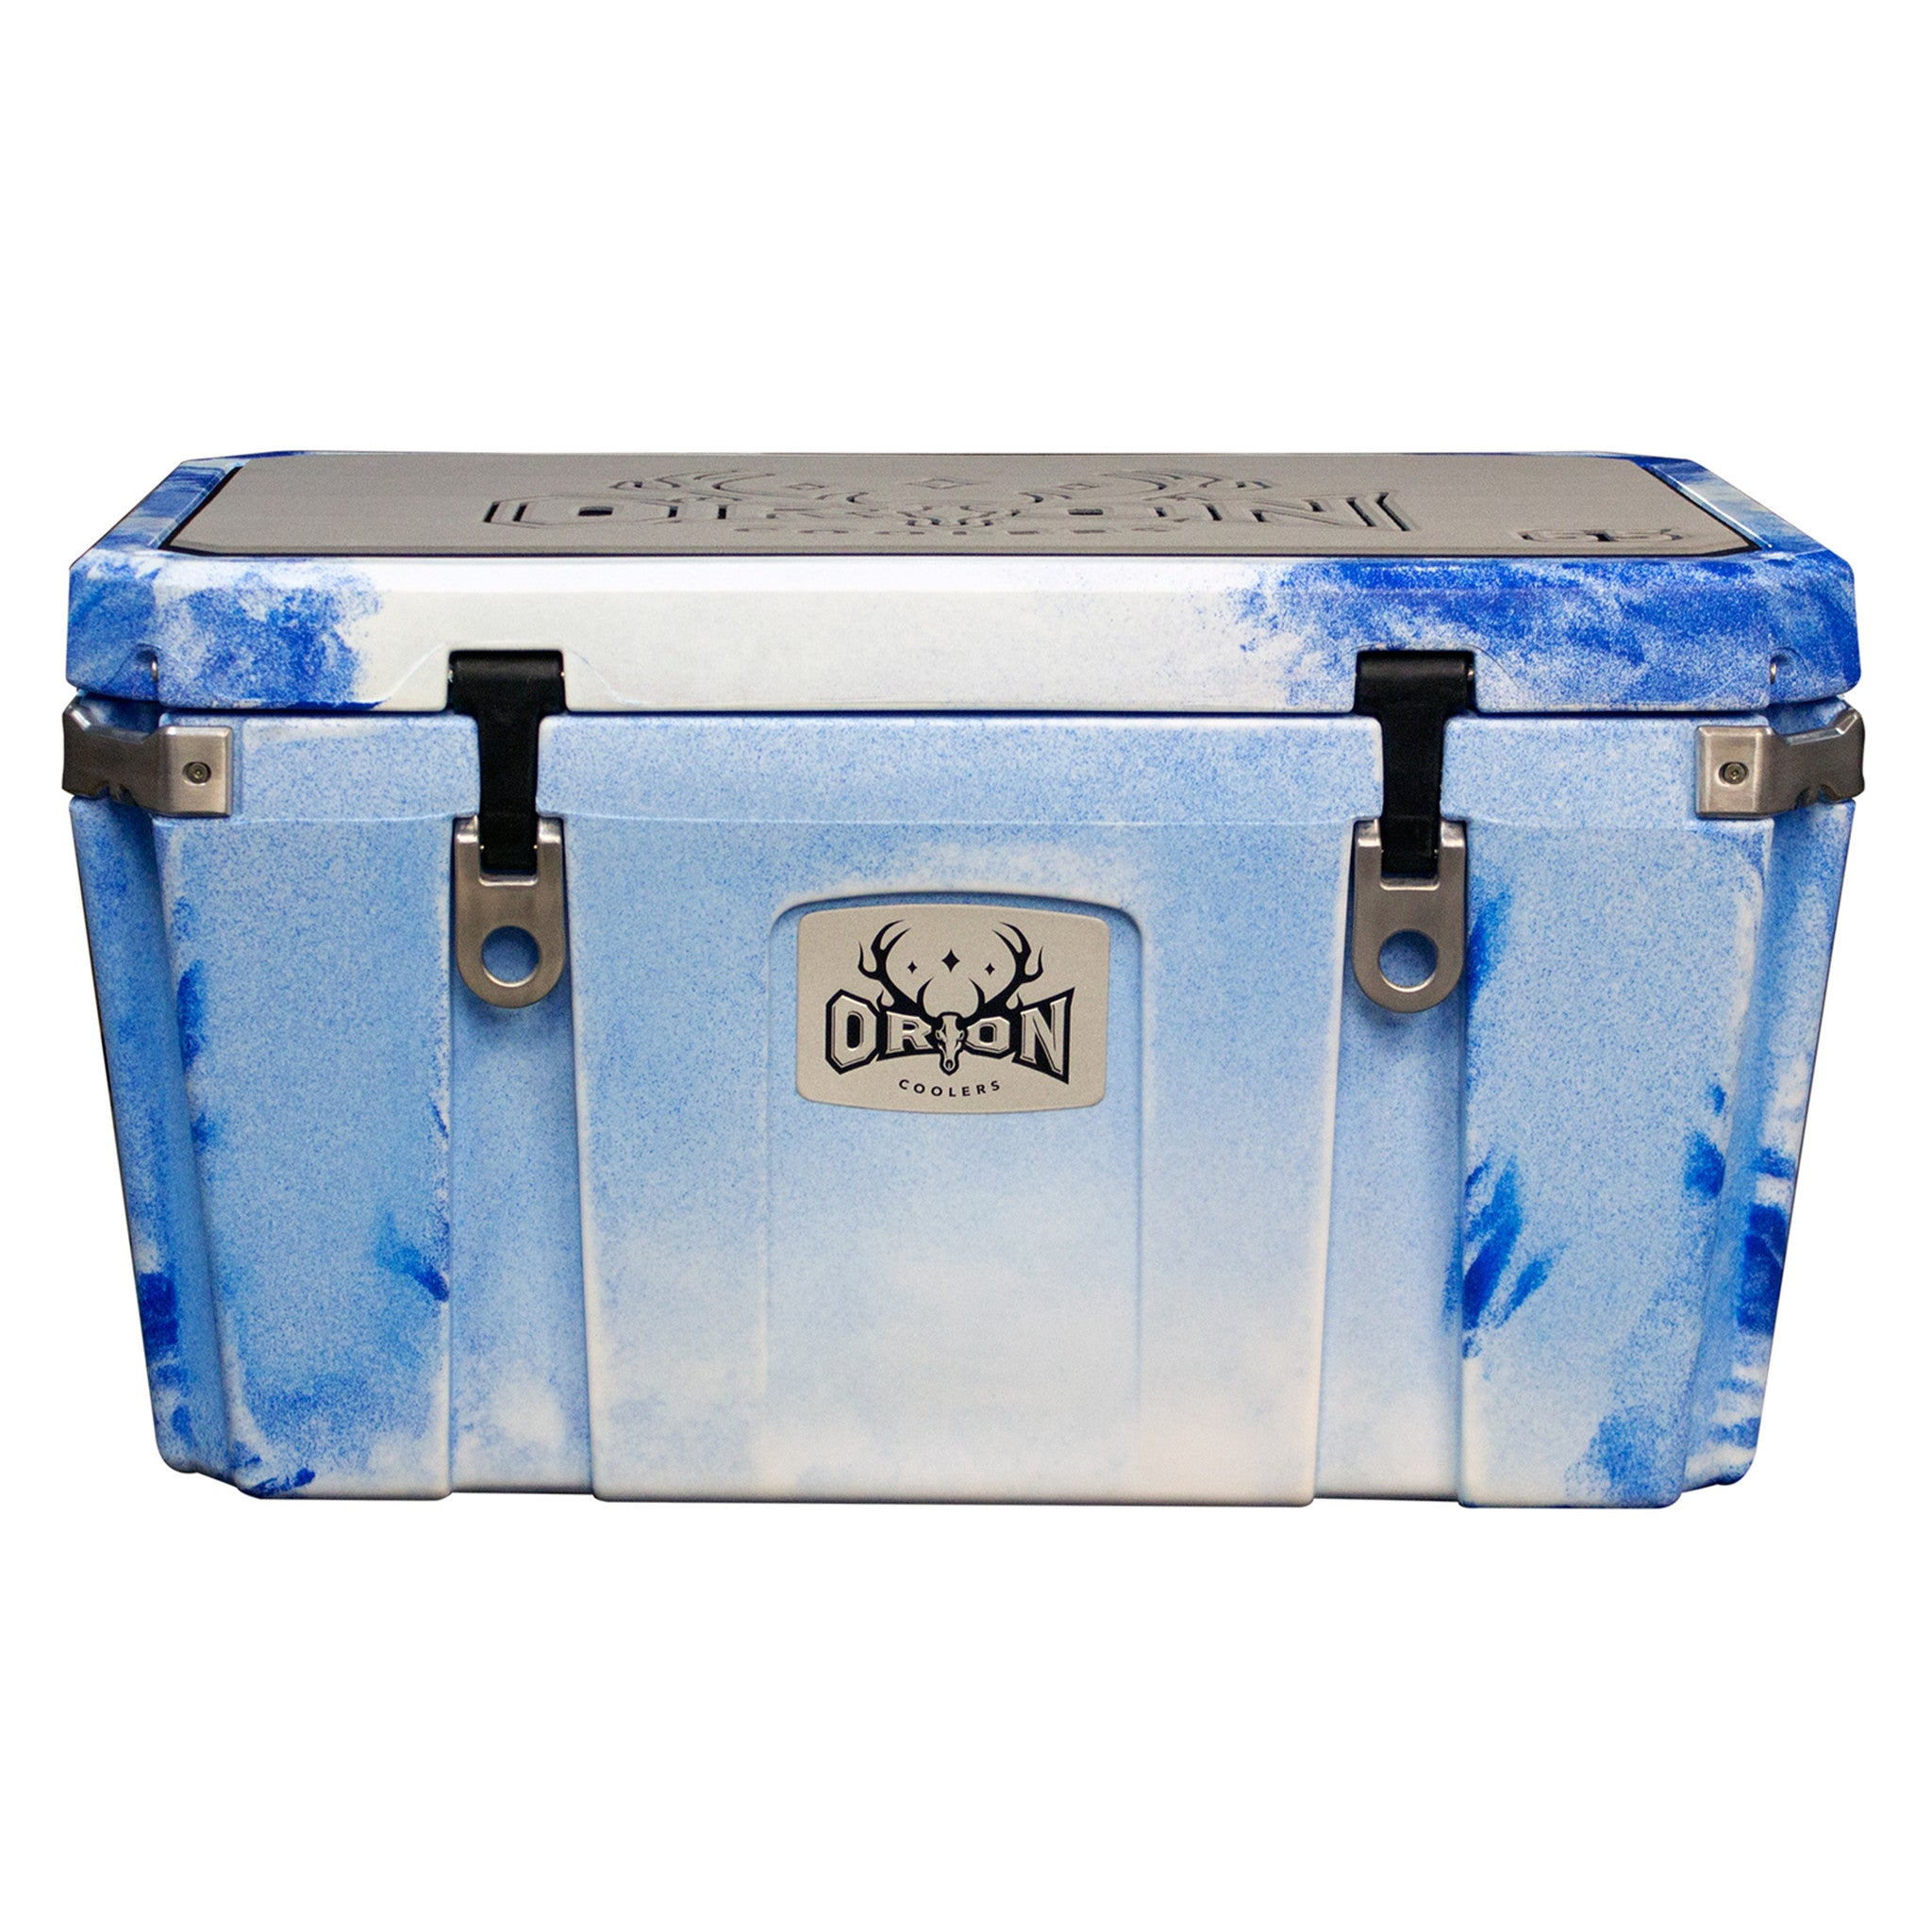 Orion 65 Coolers Mineral Bluff Trading Co